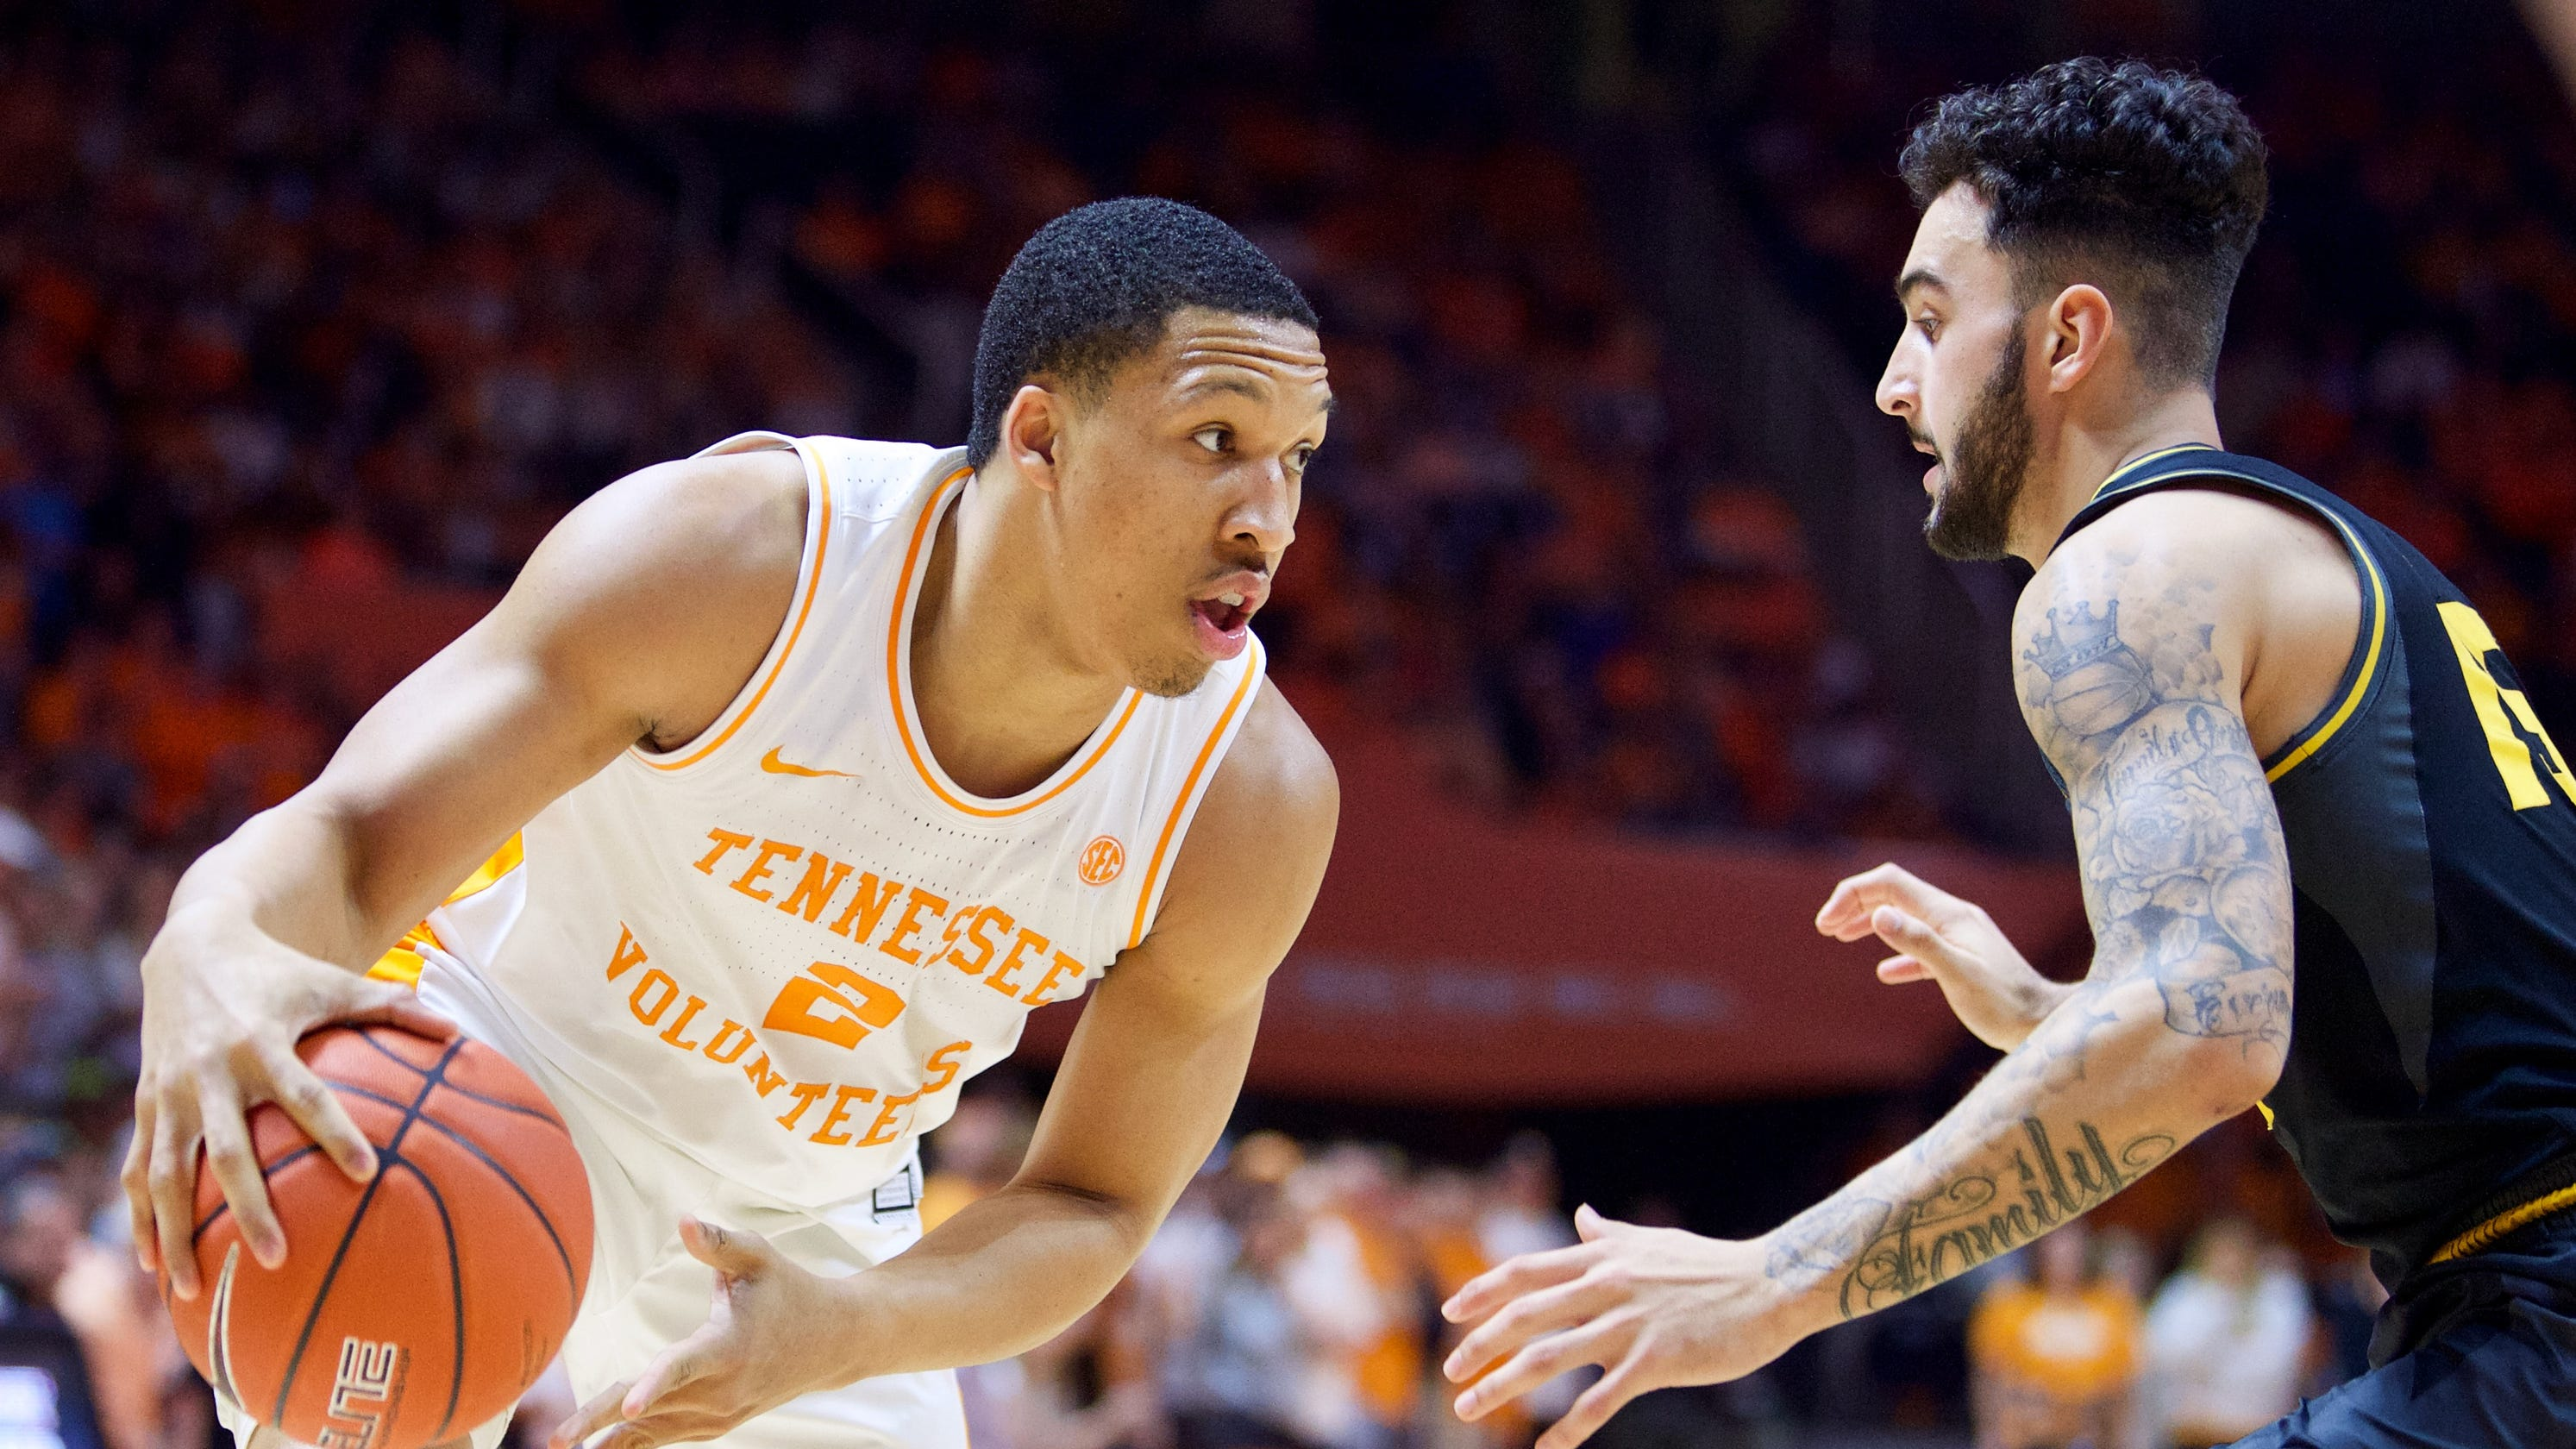 792ffacbcd4dd UT Vols basketball expects SEC road to get tougher, starting with Florida